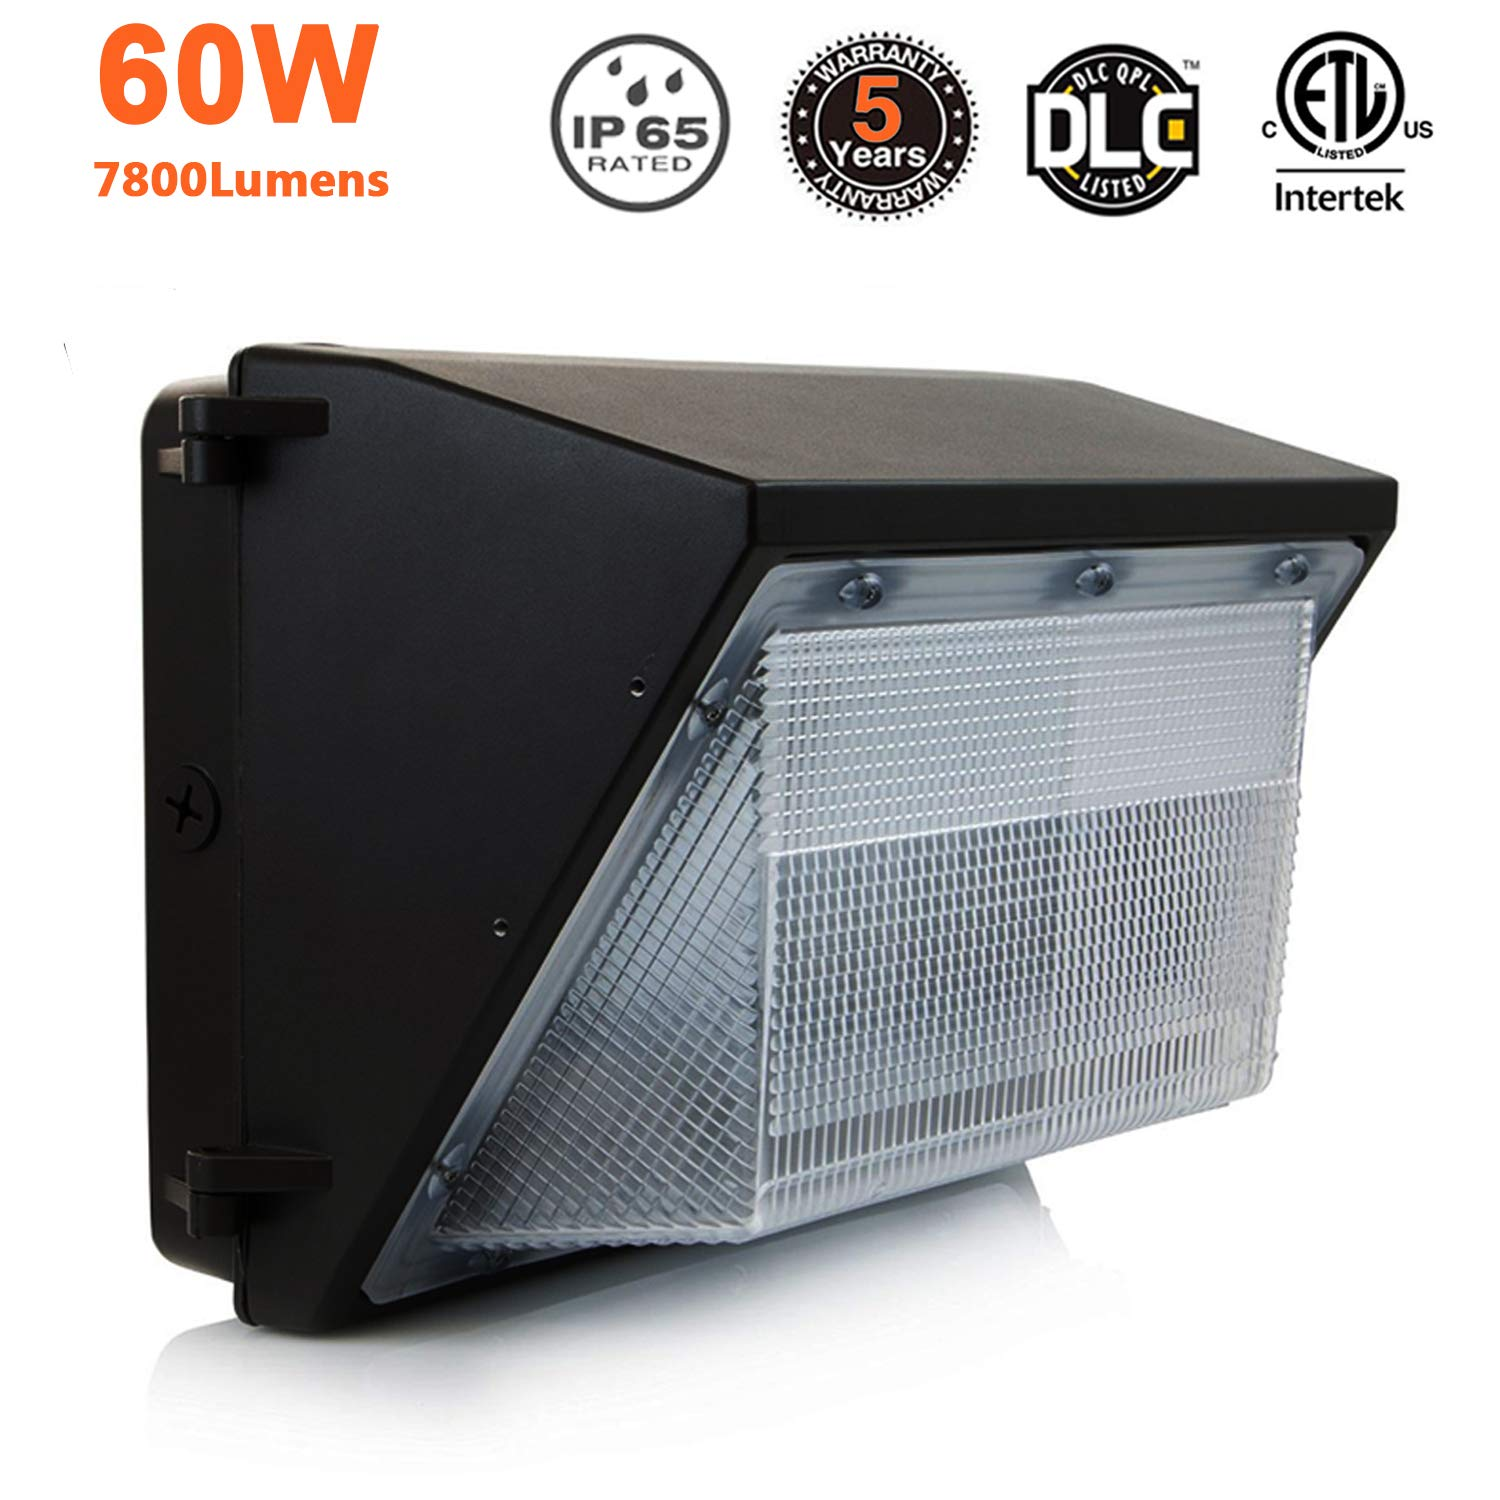 LED Wall Pack Light 60W,Commercial and Industrial Outdoor Lighting,7800 Lumens,IP65 Waterproof,300~400W HPS/HID Replacement,Security LED Light Fixture for Building Home Security & Walkways,ETL & DLC